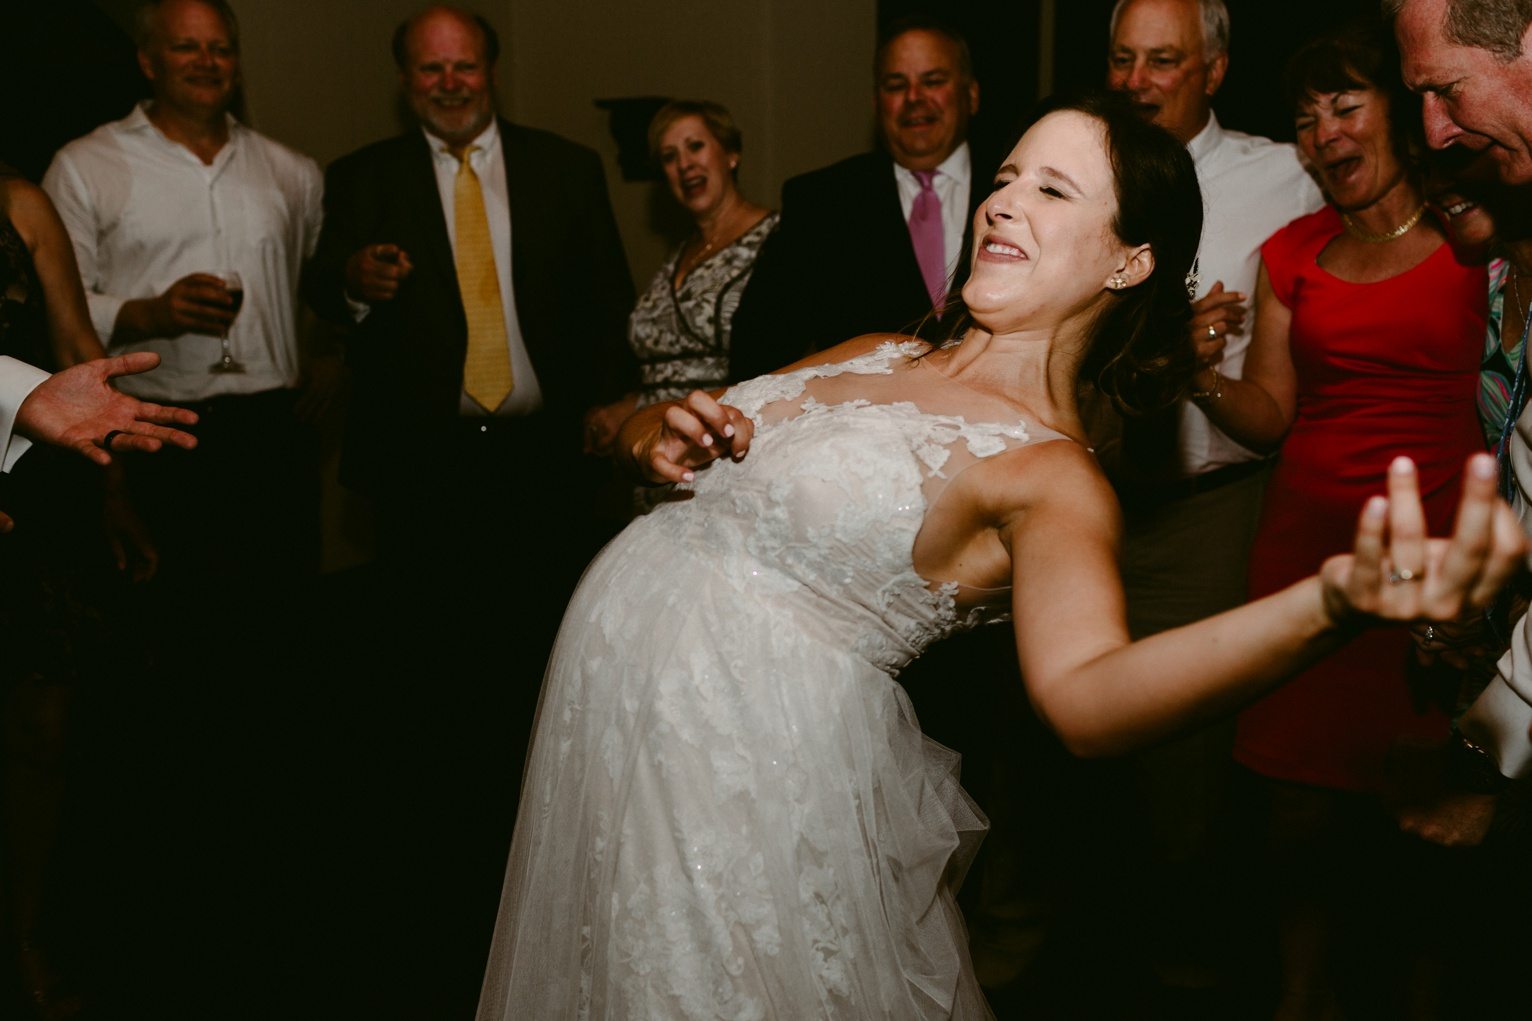 Dreamtownco.com_blog_Nick&Lindsay_Wedding_0178.jpg